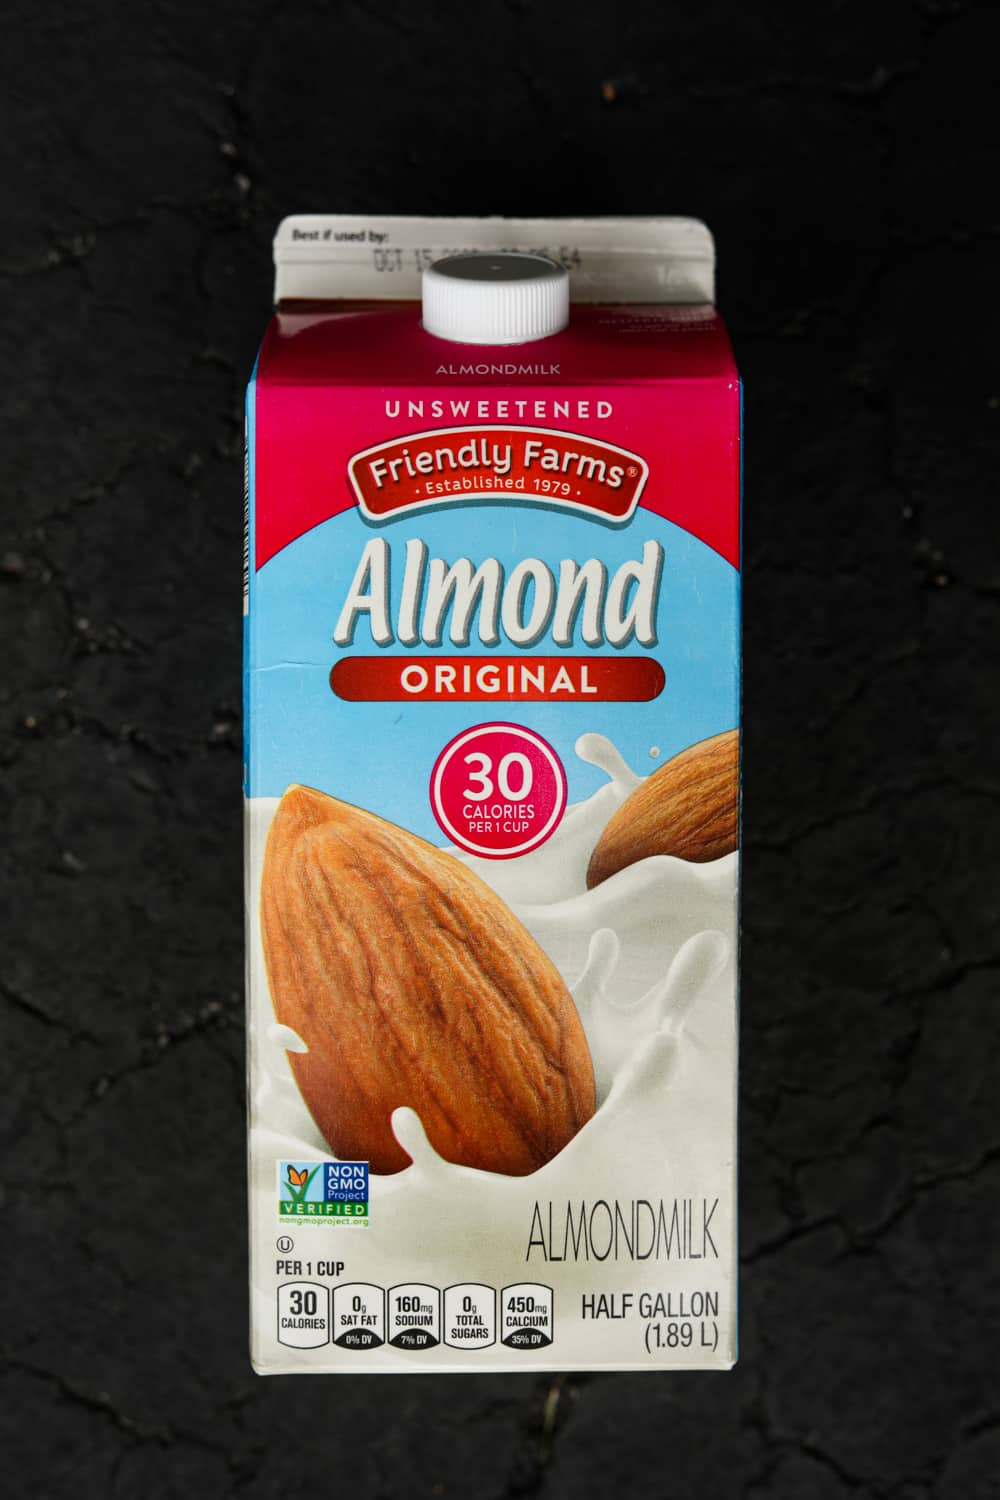 A container of almond milk.